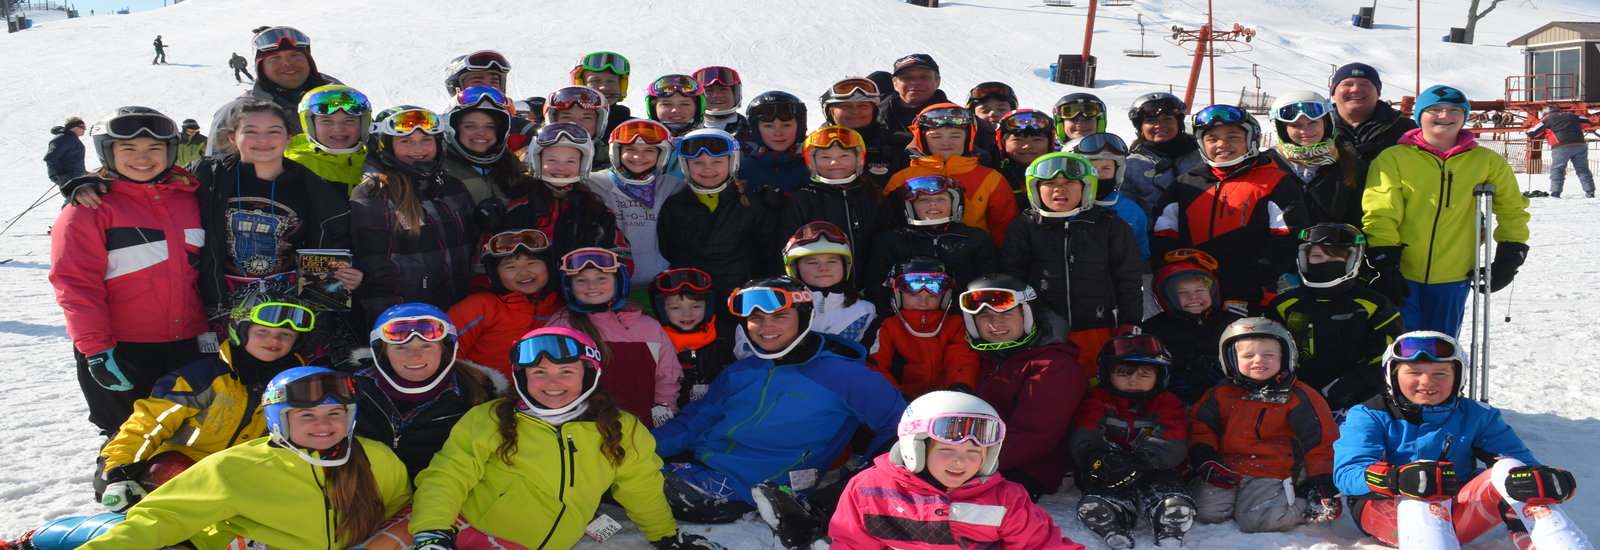 Ski Clubs are Forming Now!